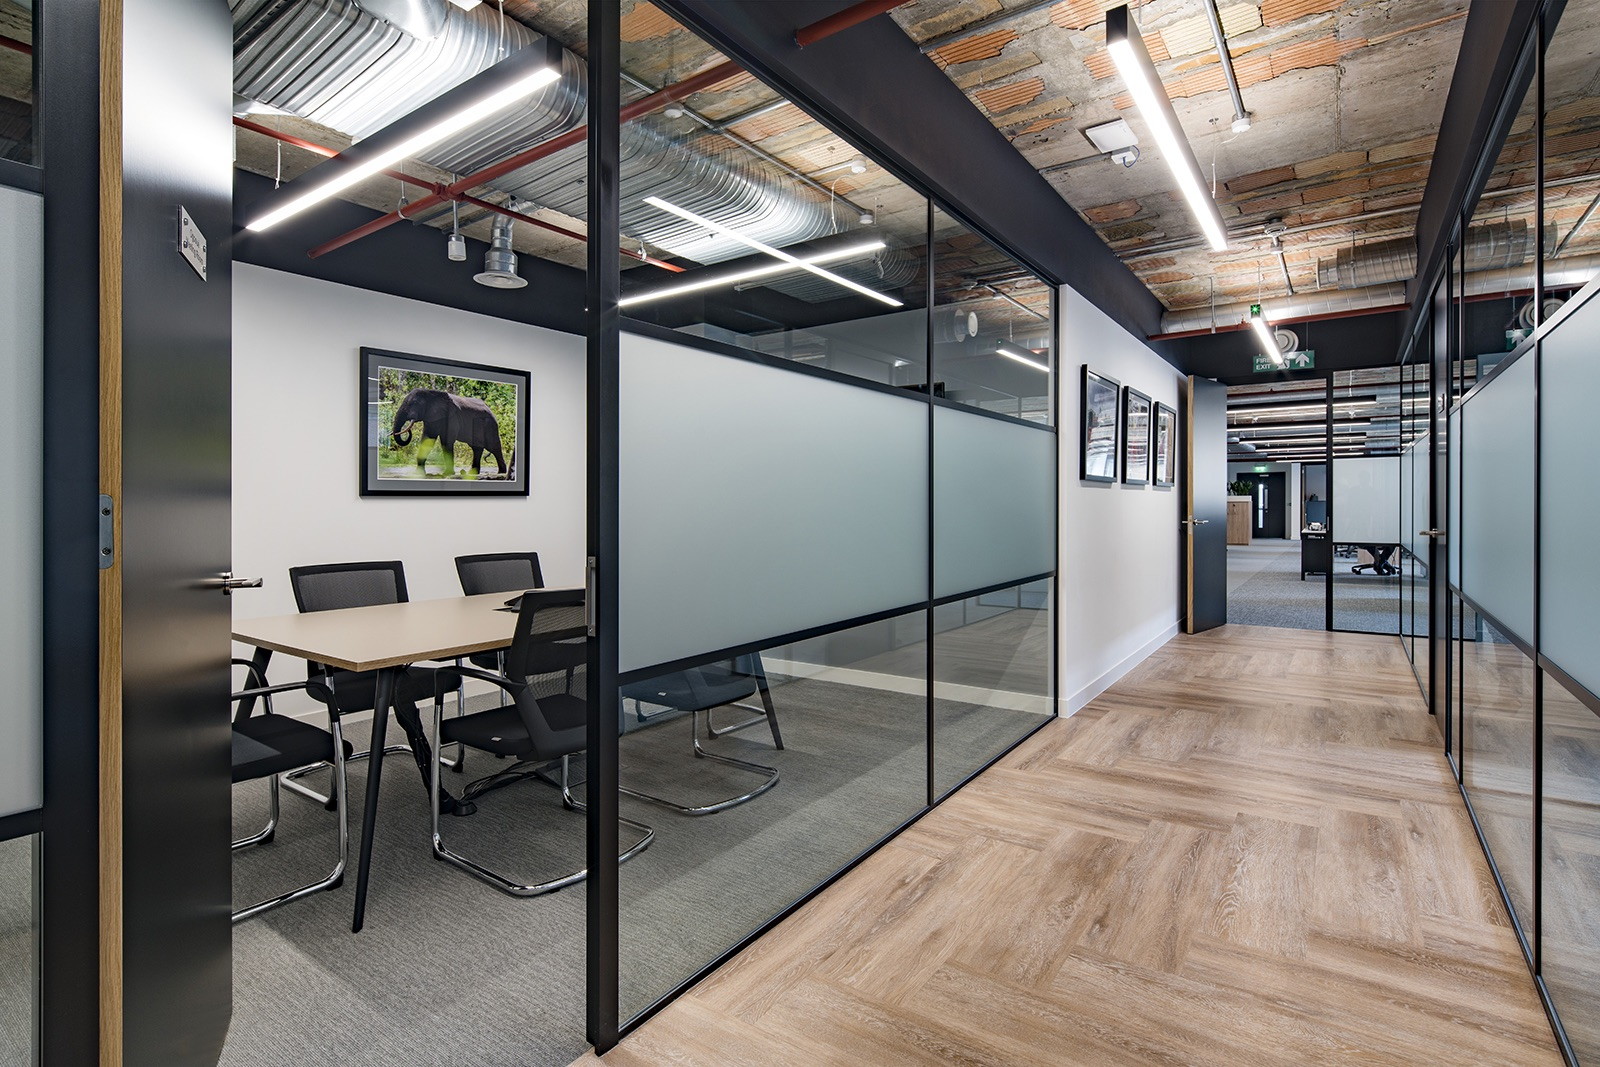 Rooms: A Tour Of Assala Energy's New London Office